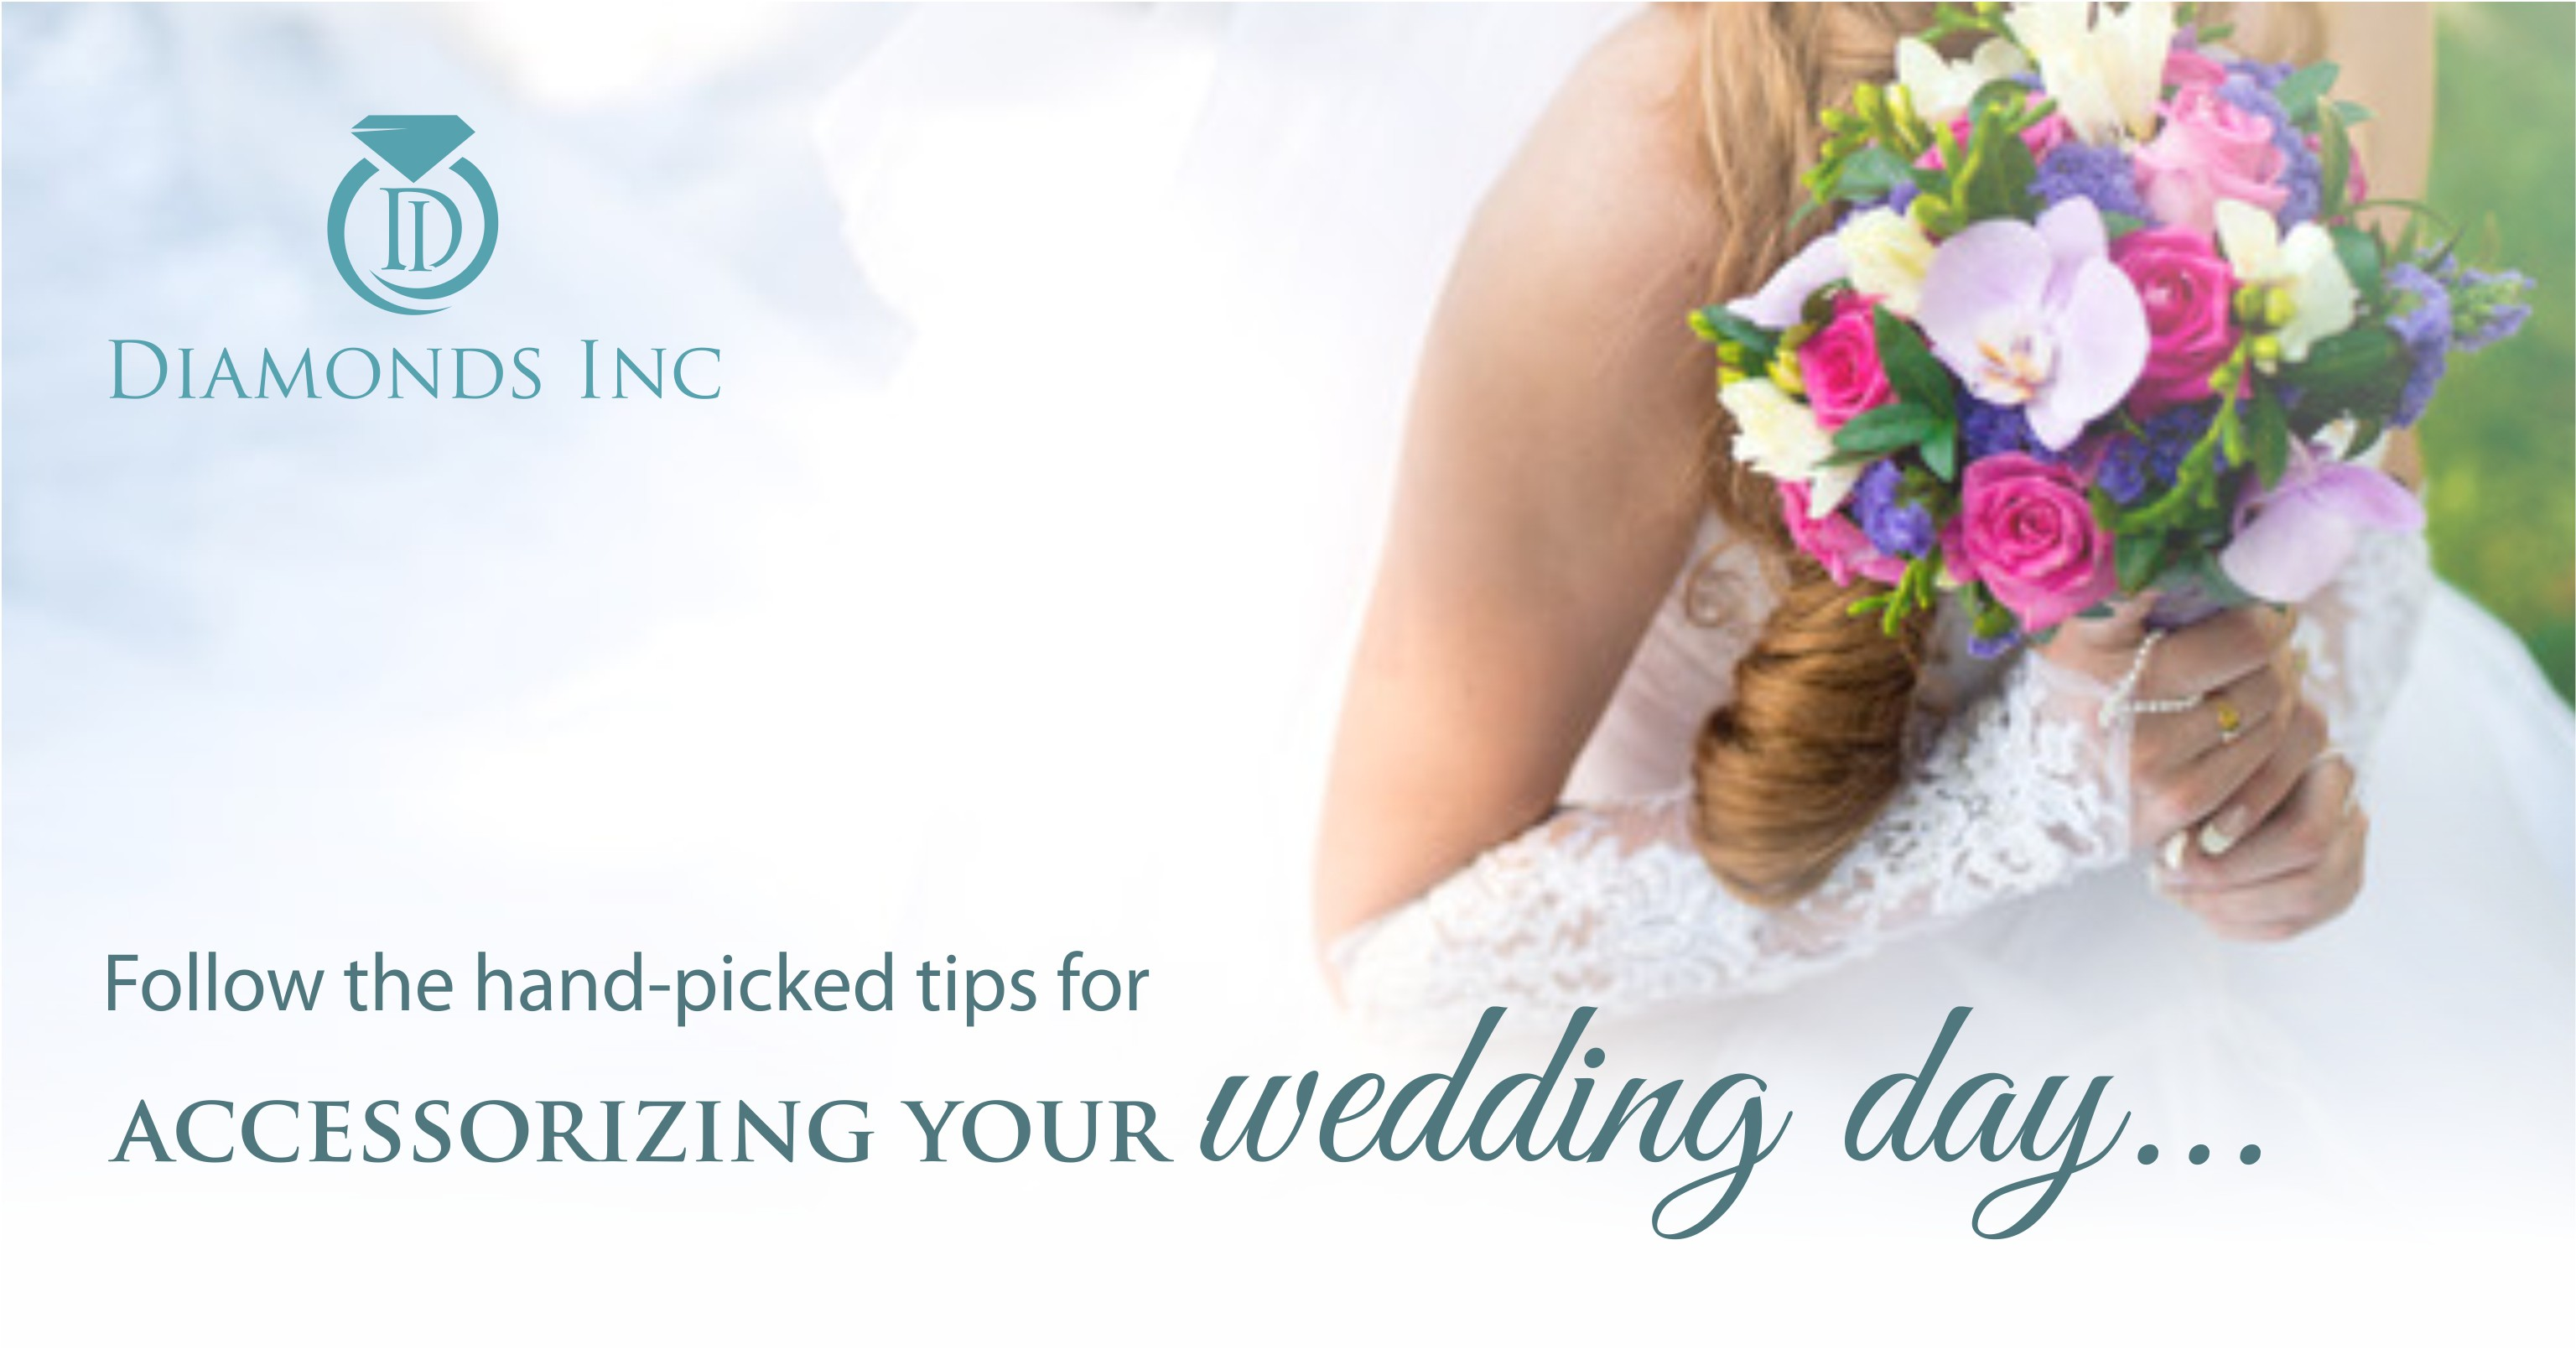 Follow The Hand Picked Tips For Accessorizing Your Wedding Day